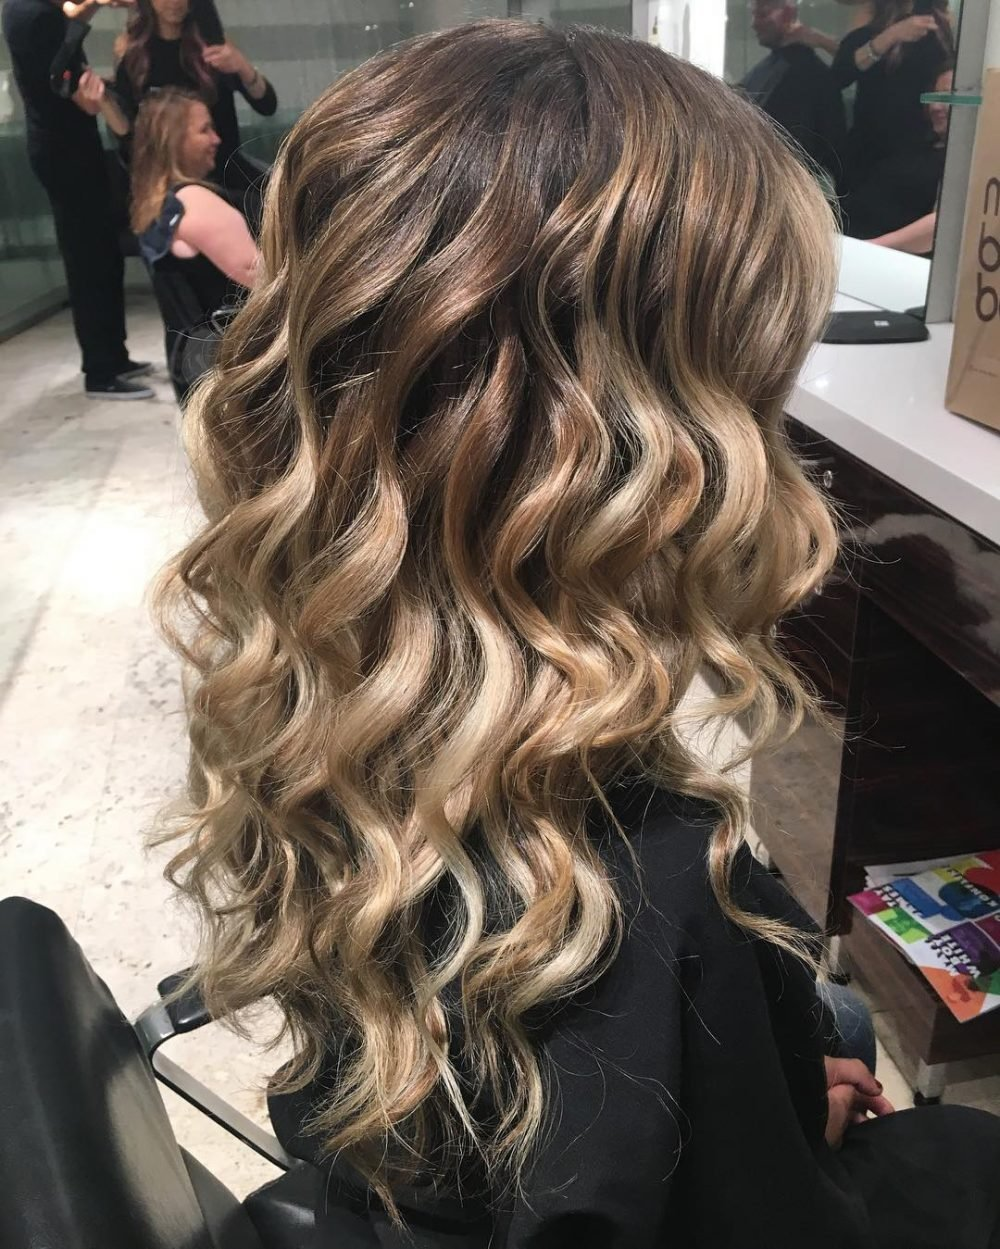 The Best 18 Stunning Curly Prom Hairstyles For 2019 Updos Down Do S Braids Pictures